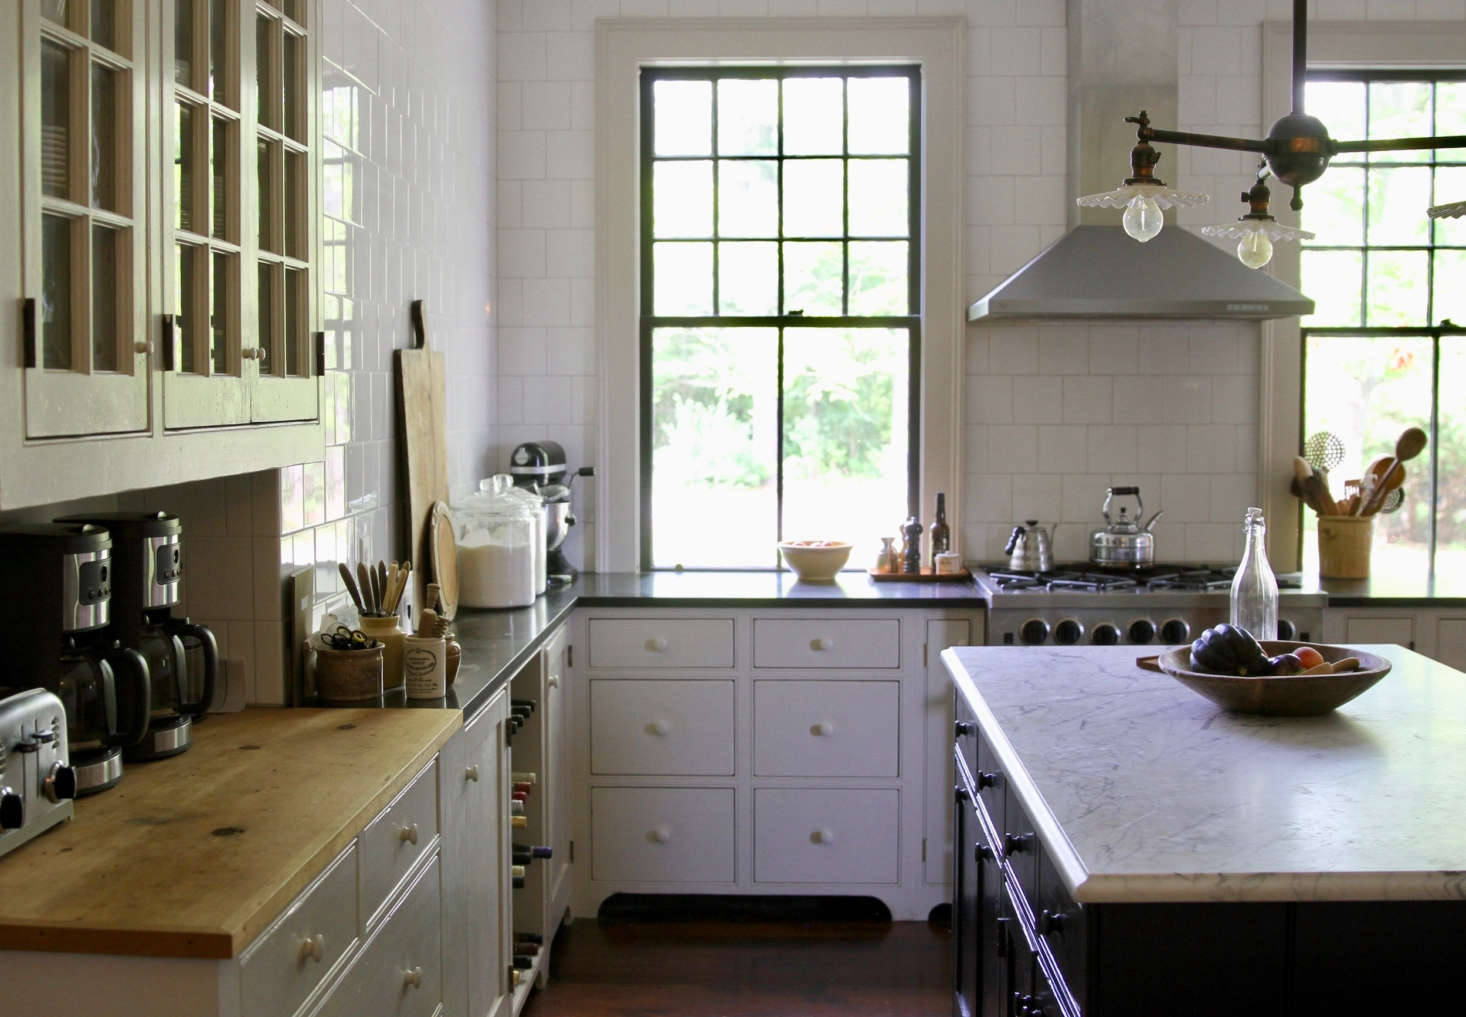 The kitchen cabinets are painted Benjamin Moore&#8